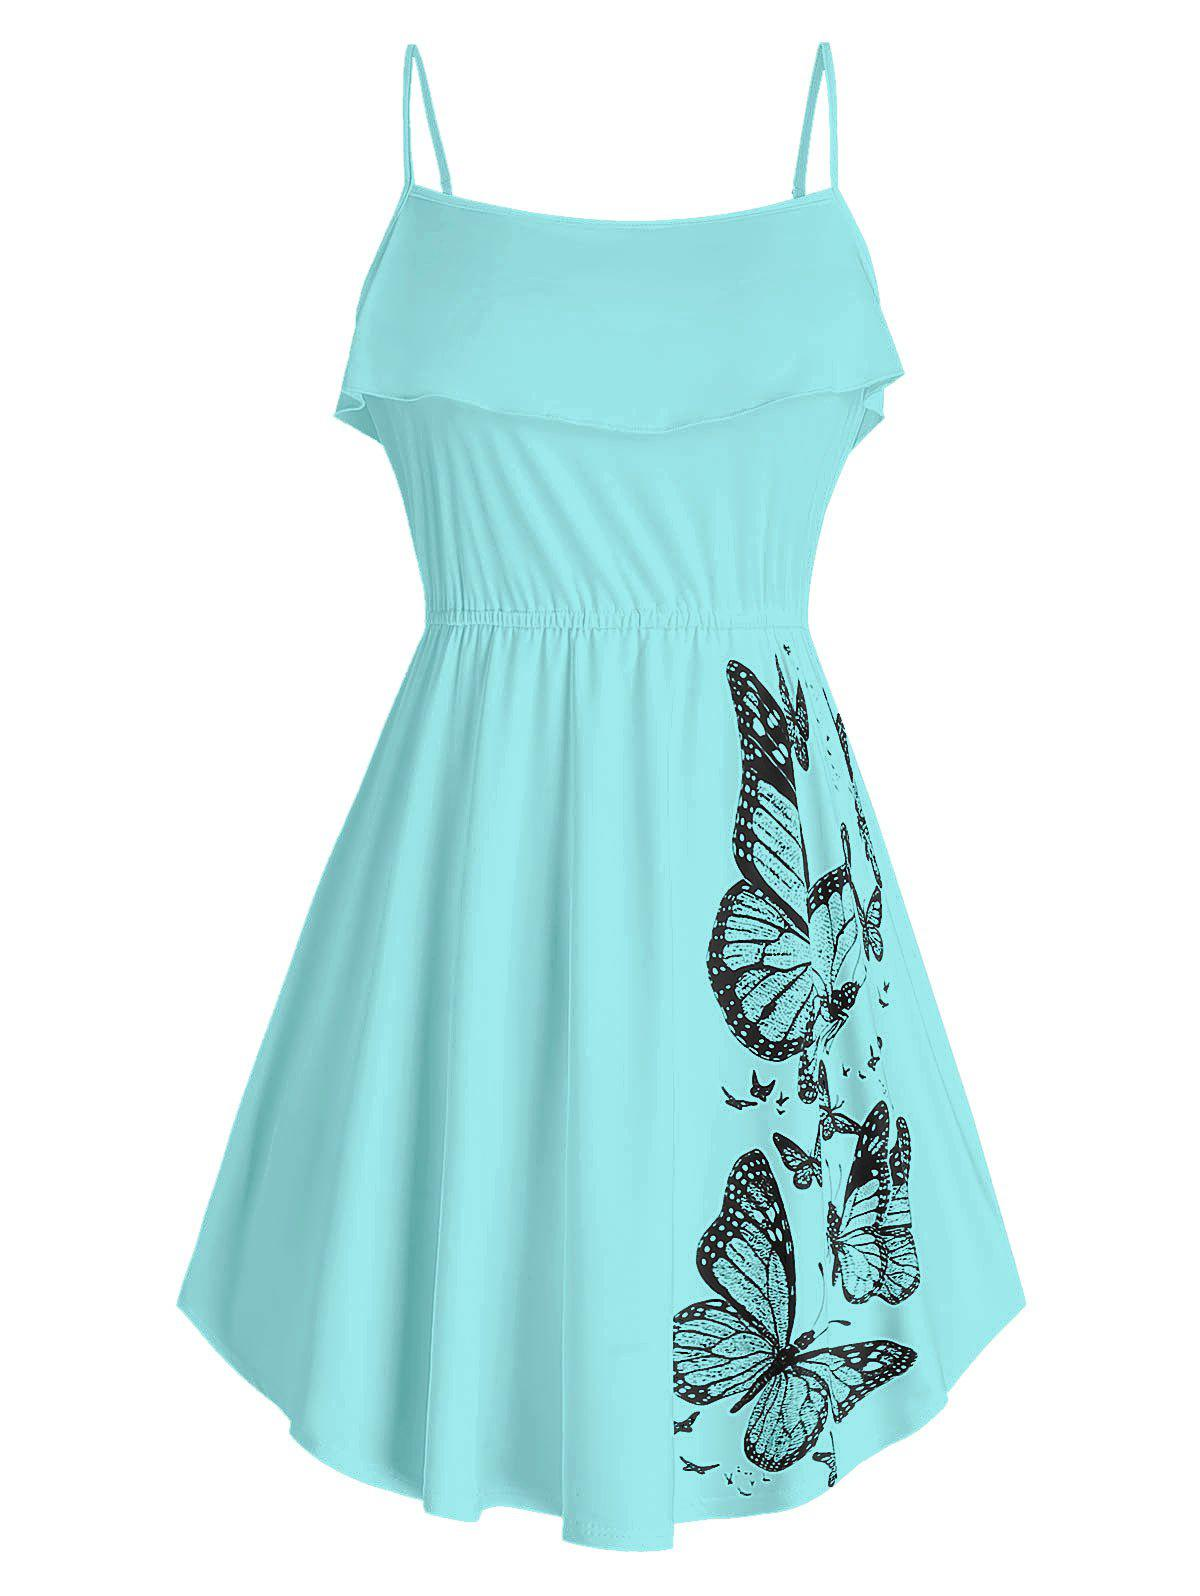 Plus Size Butterfly Print Ruffled Tank Top - CORAL BLUE 2X